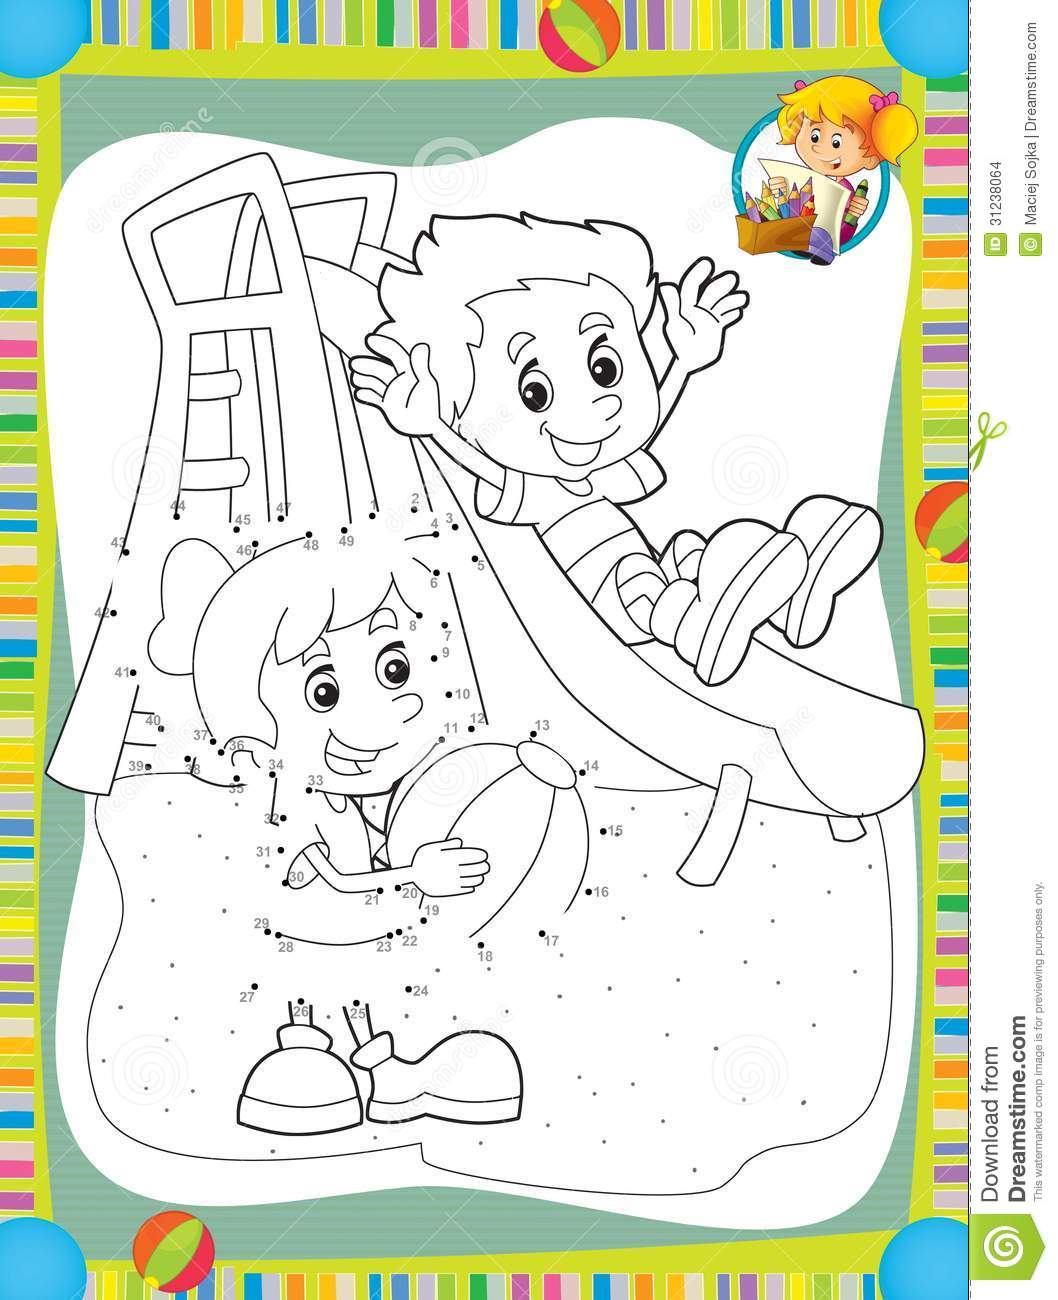 The Page With Exercises For Kids Coloring Book Make Up